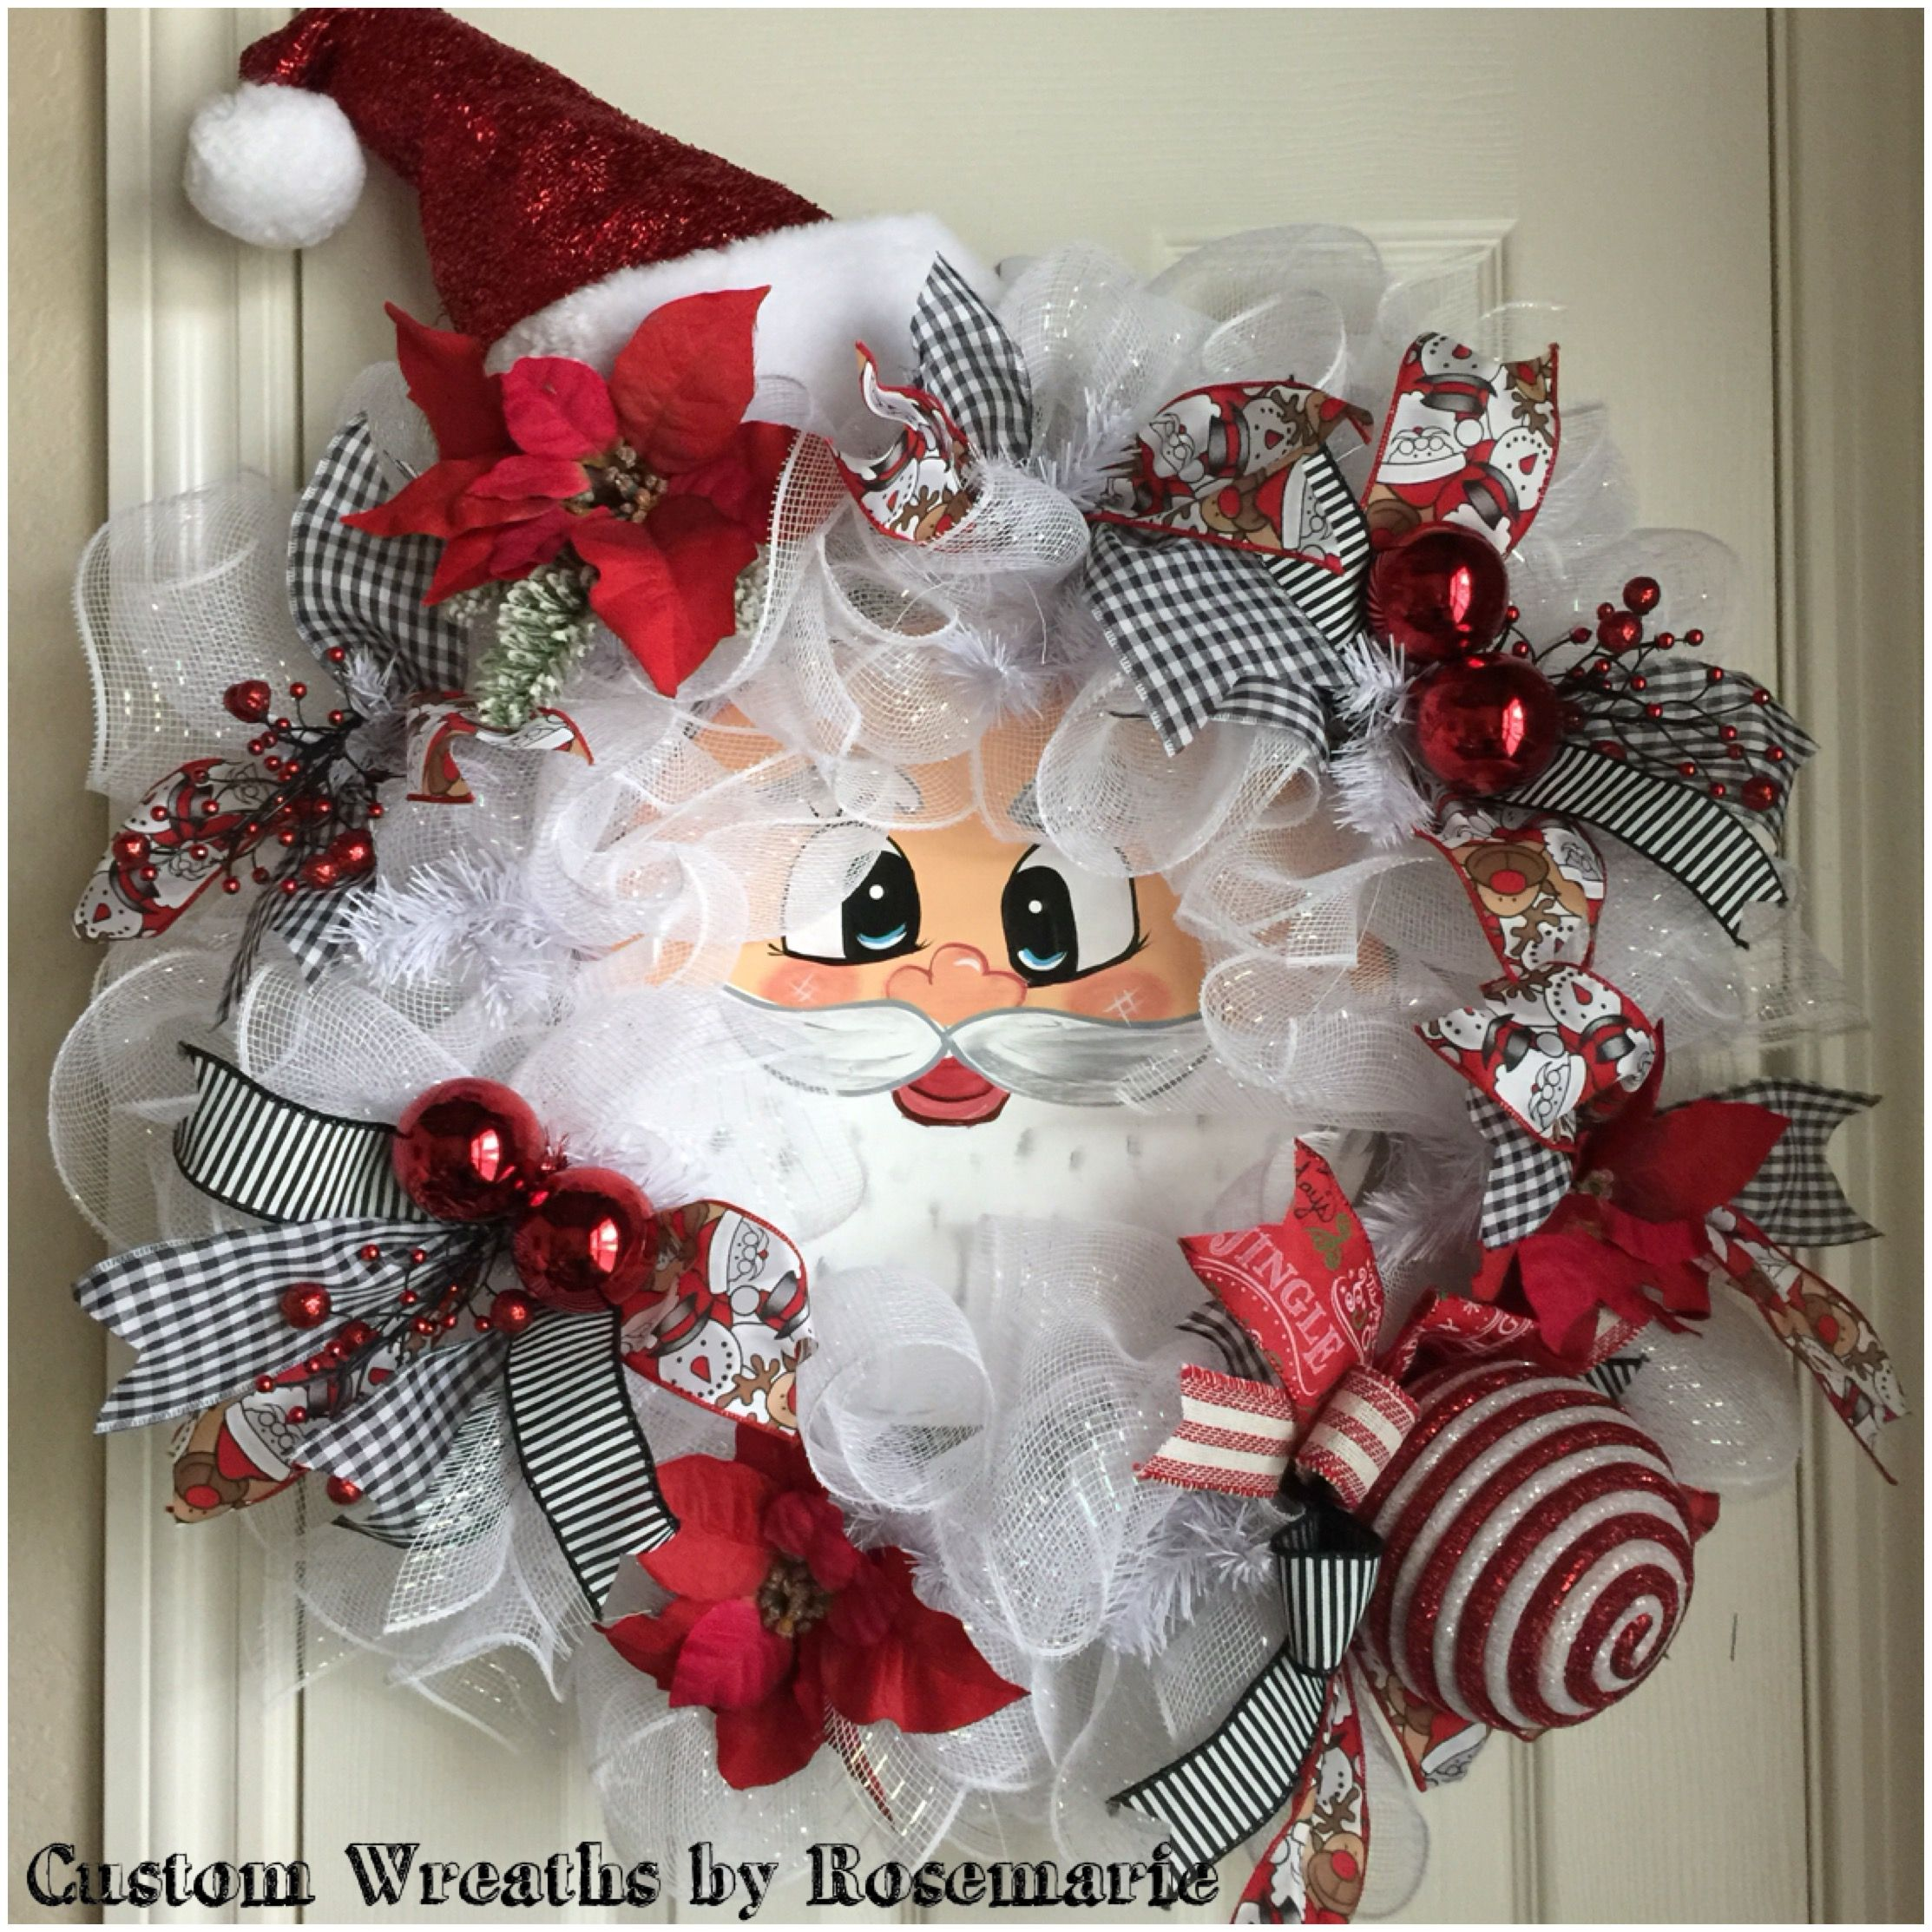 Fiber optic christmas snowman wreath decoration - Find This Pin And More On Wreaths